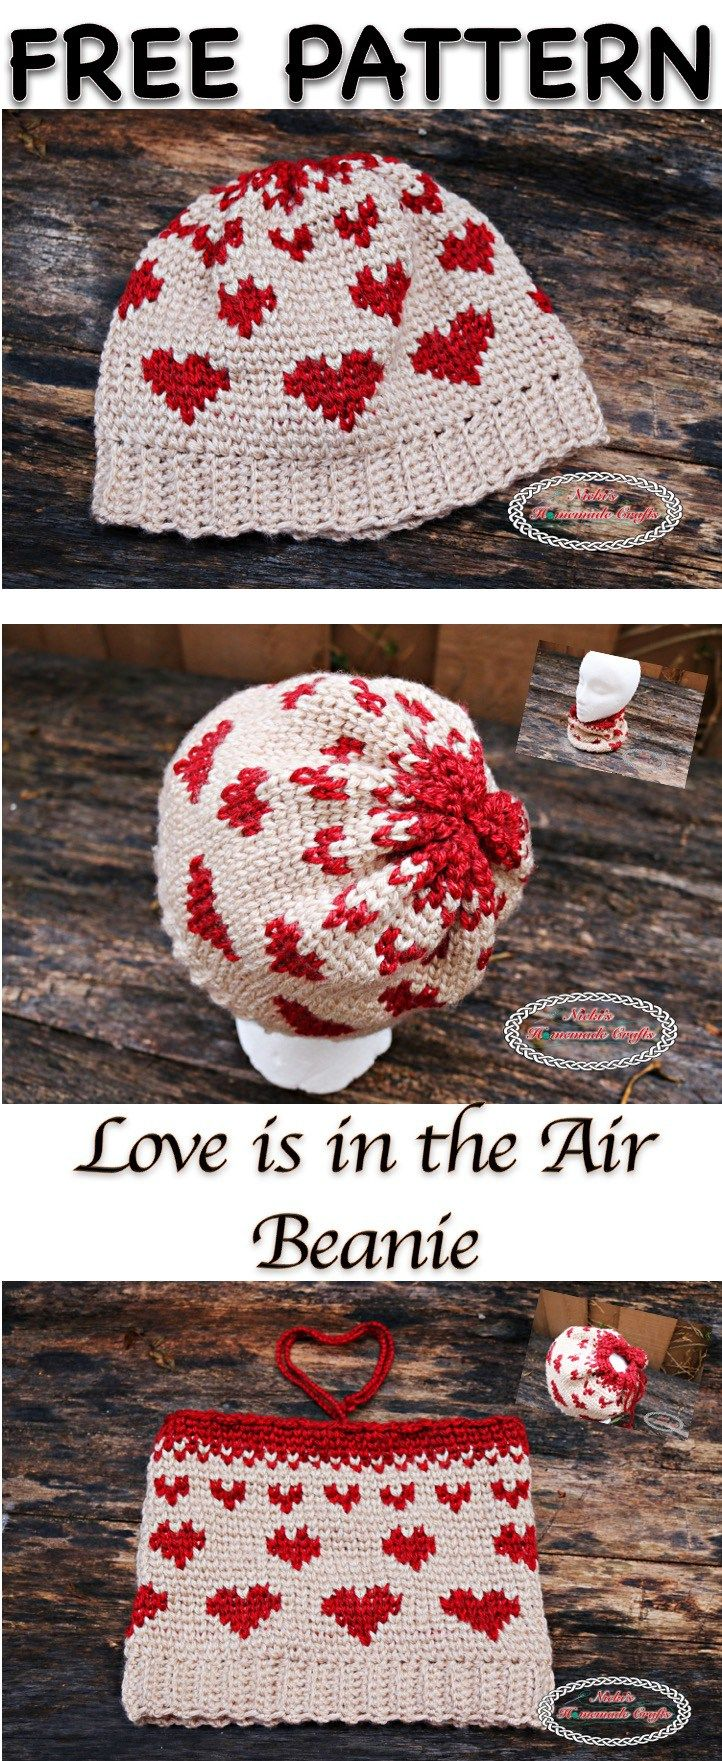 Love is in the Air Beanie - Free Crochet Pattern